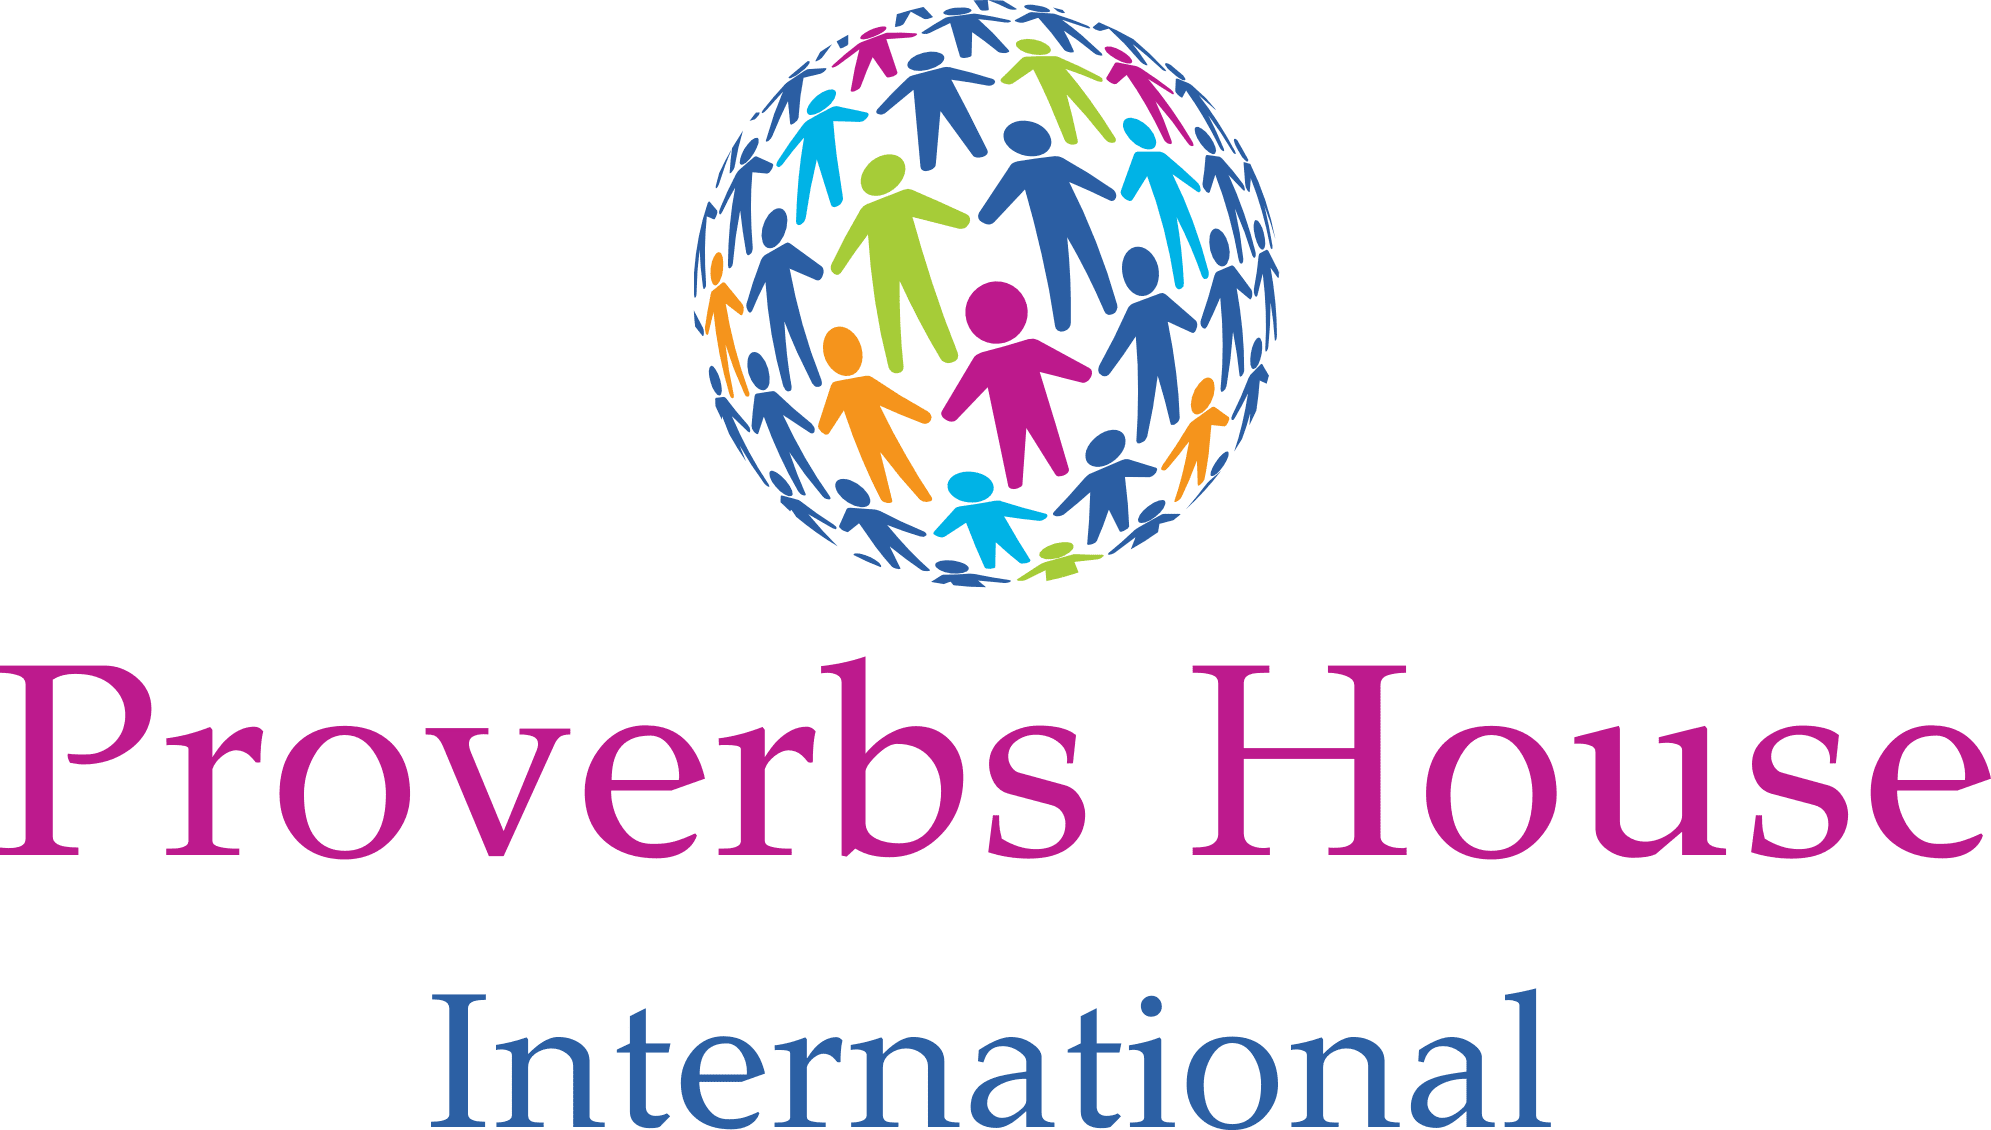 Proverbs House International